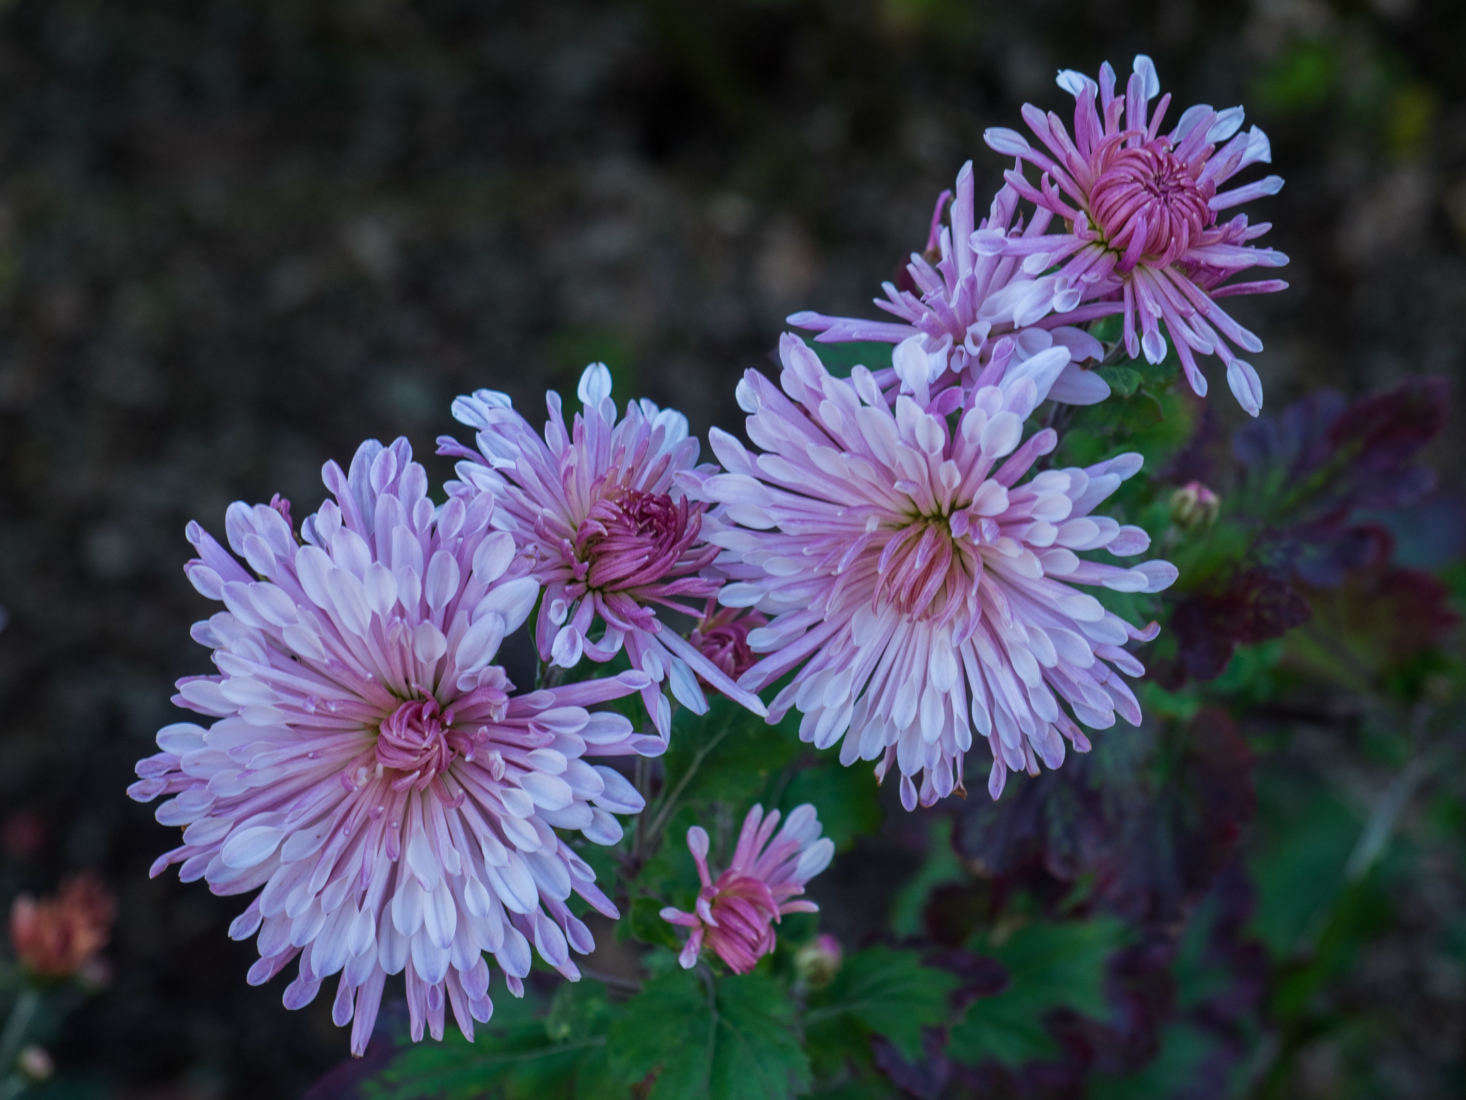 Photograph by F.D. Richards via Flickr, from Gardening 101: Chrysanthemums.